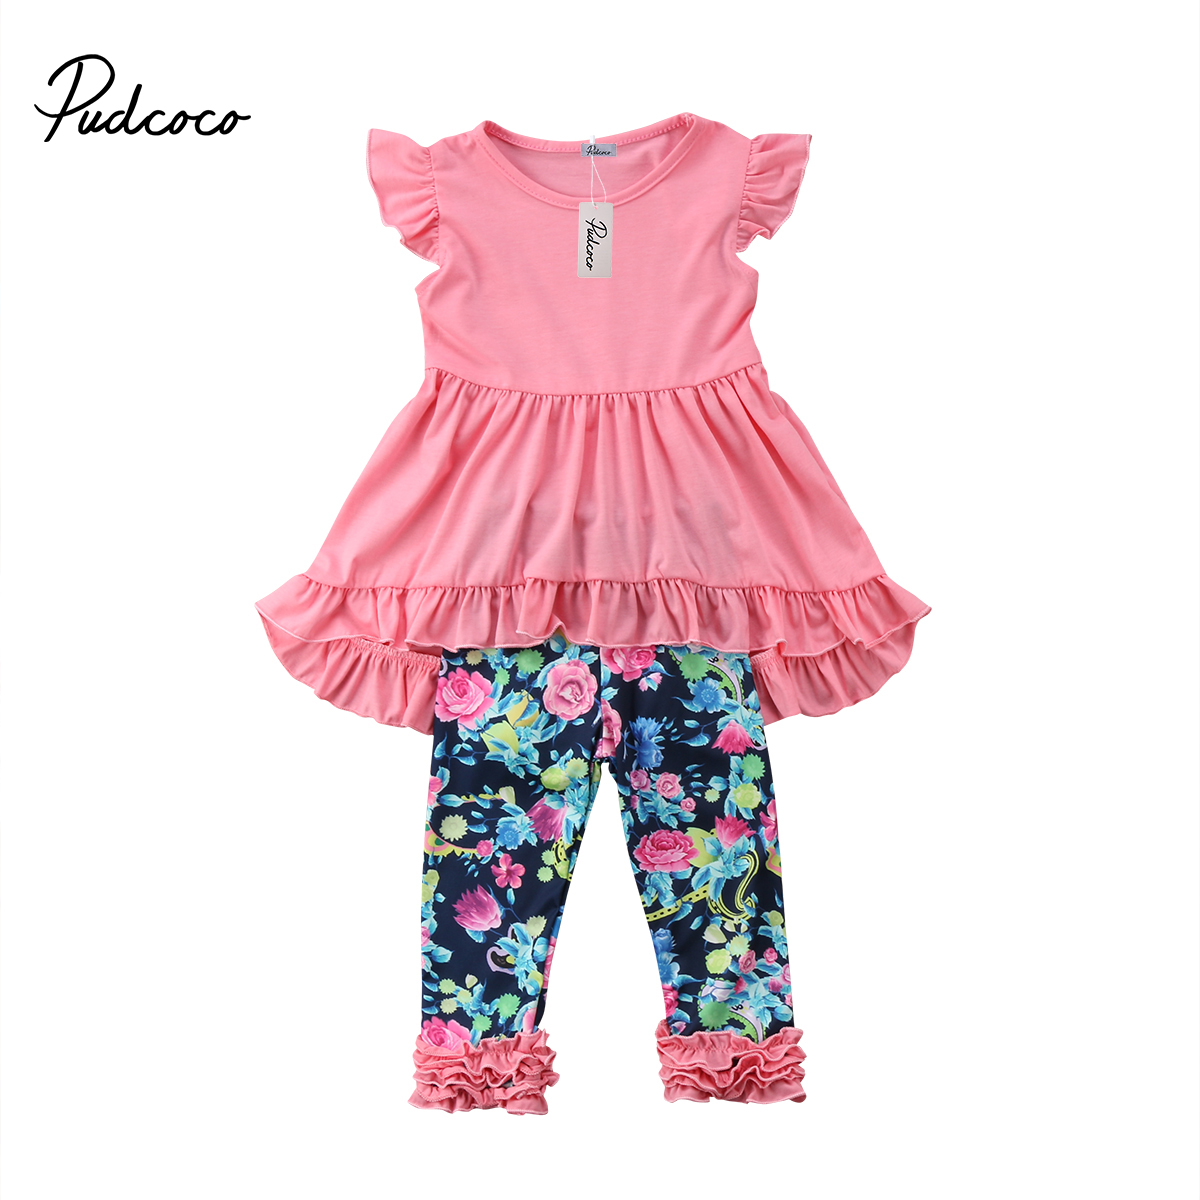 Toddler Kid Baby Girl Clothing Sleeveless Blouse Tops Floral Long Pants Leggings Summer Outfit Set 2pcs